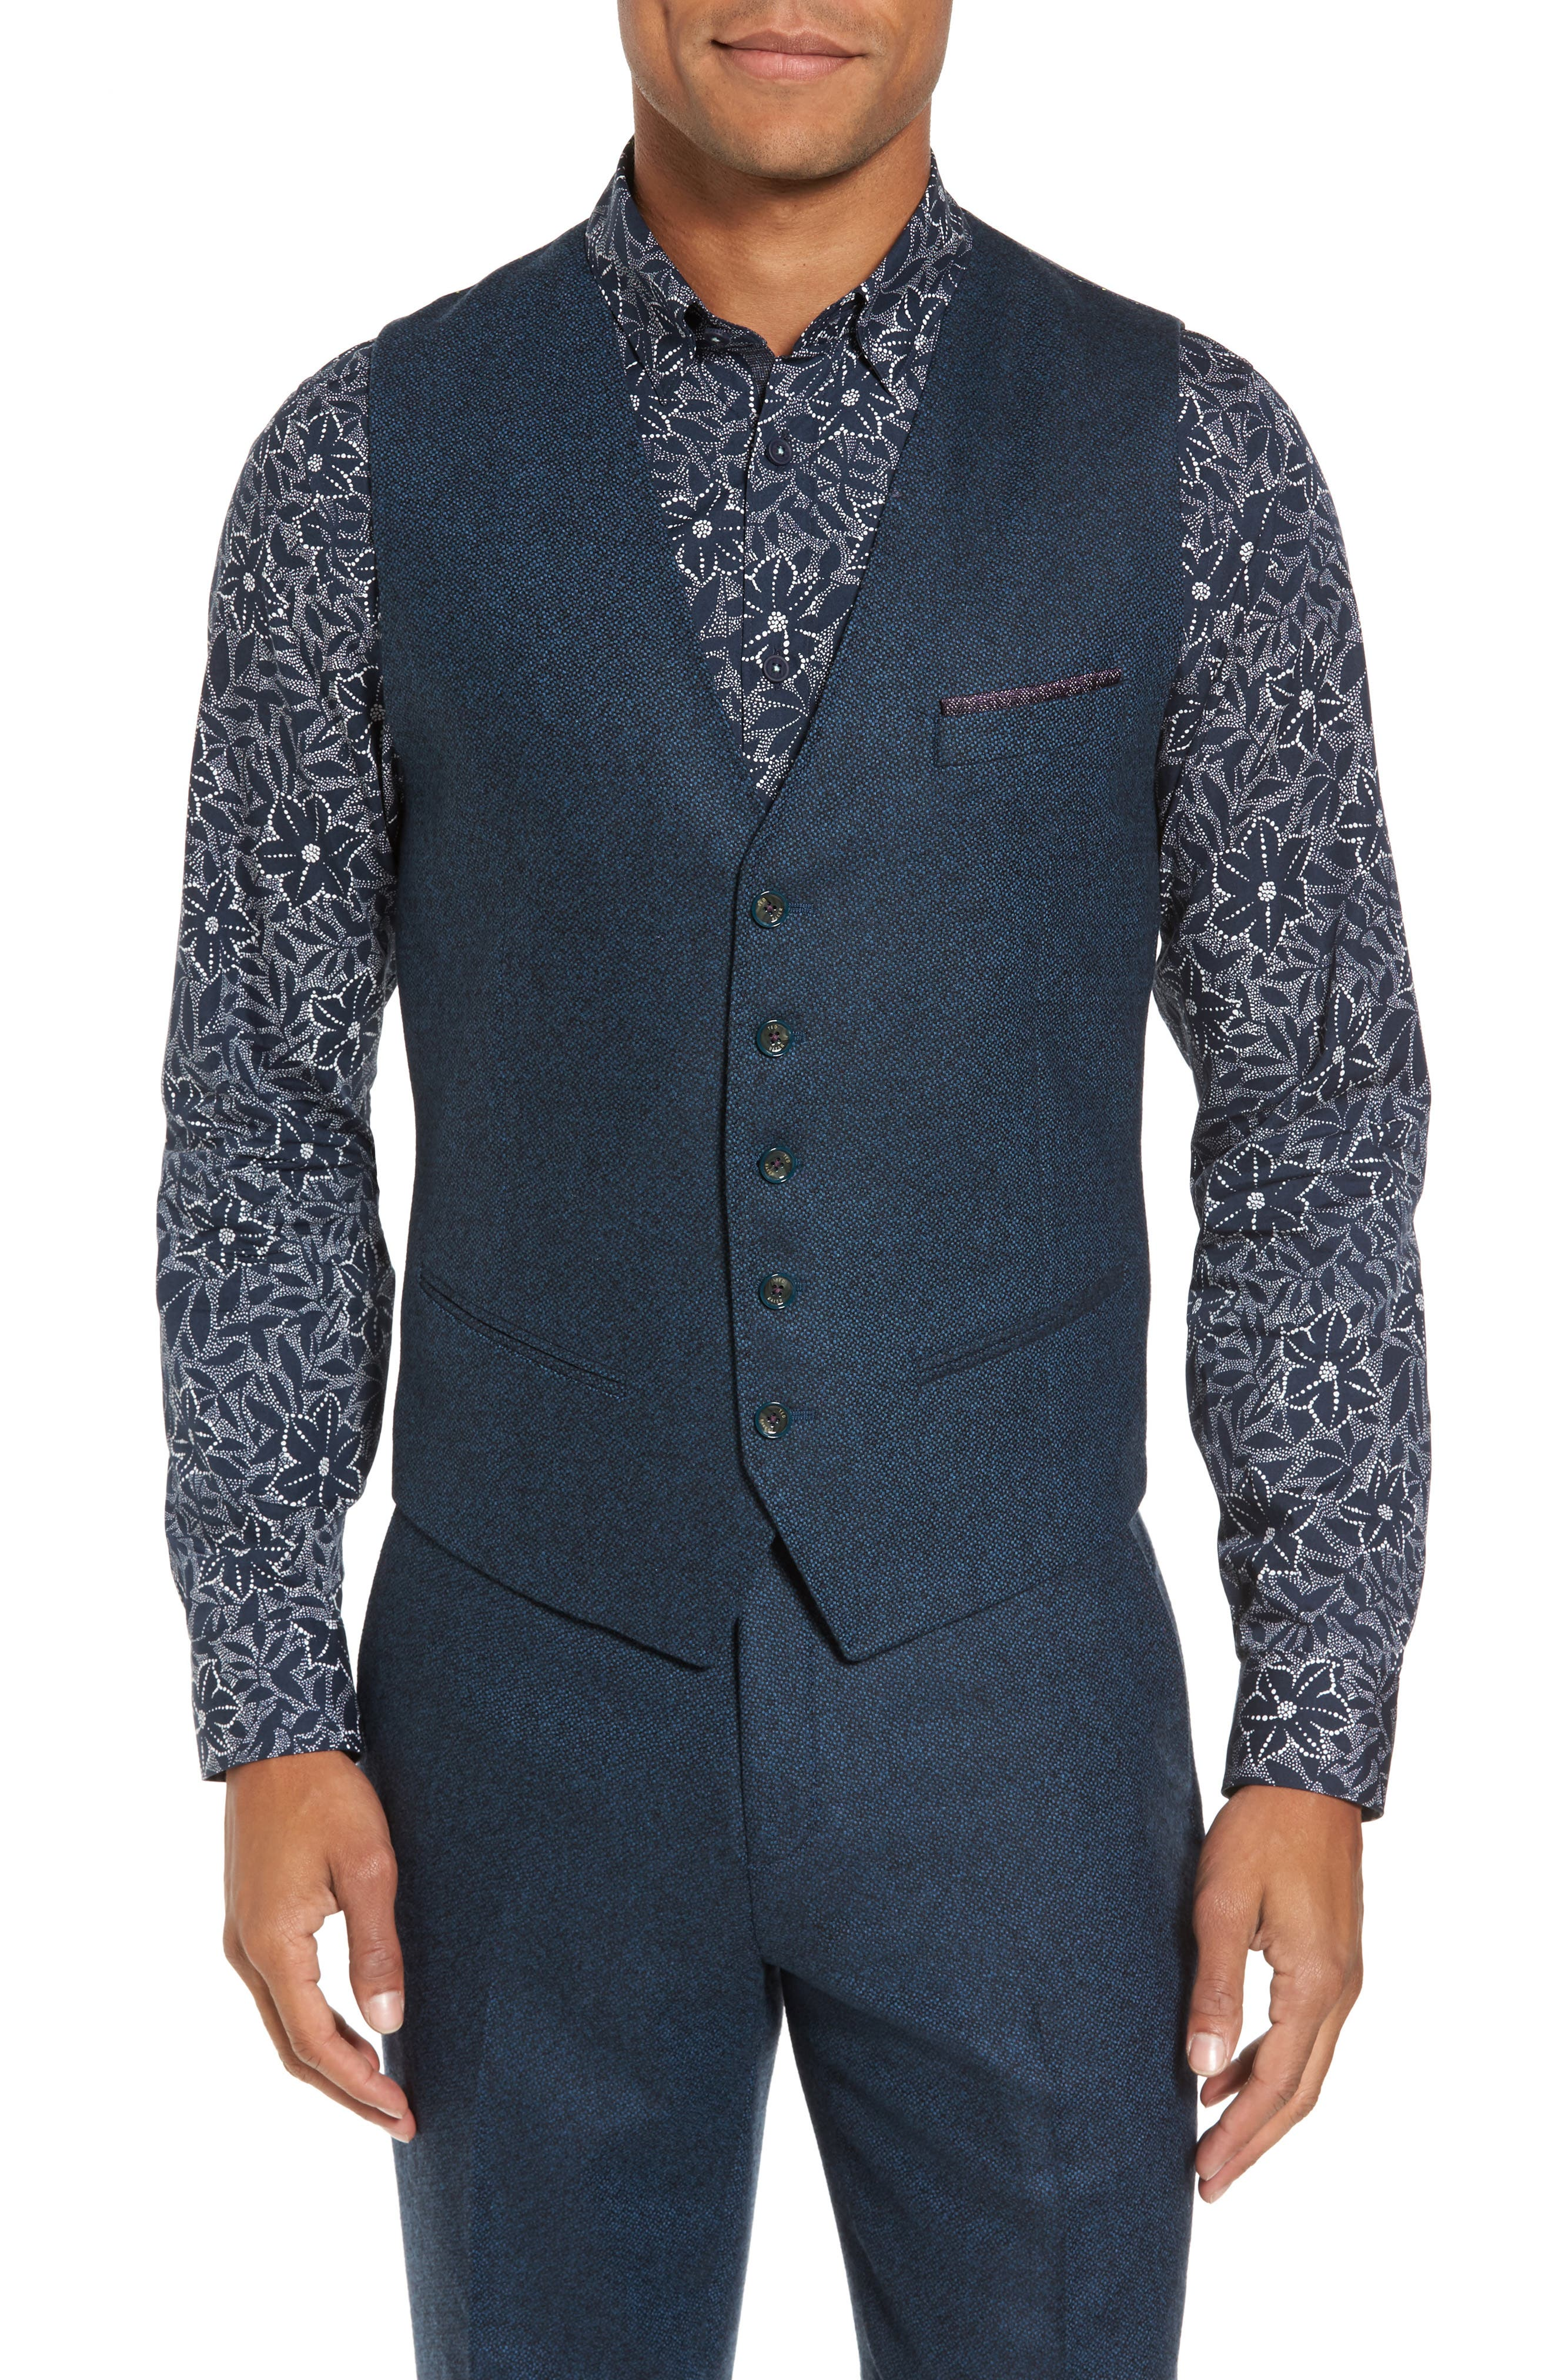 Modern Slim Fit Waistcoat,                         Main,                         color, Teal Blue